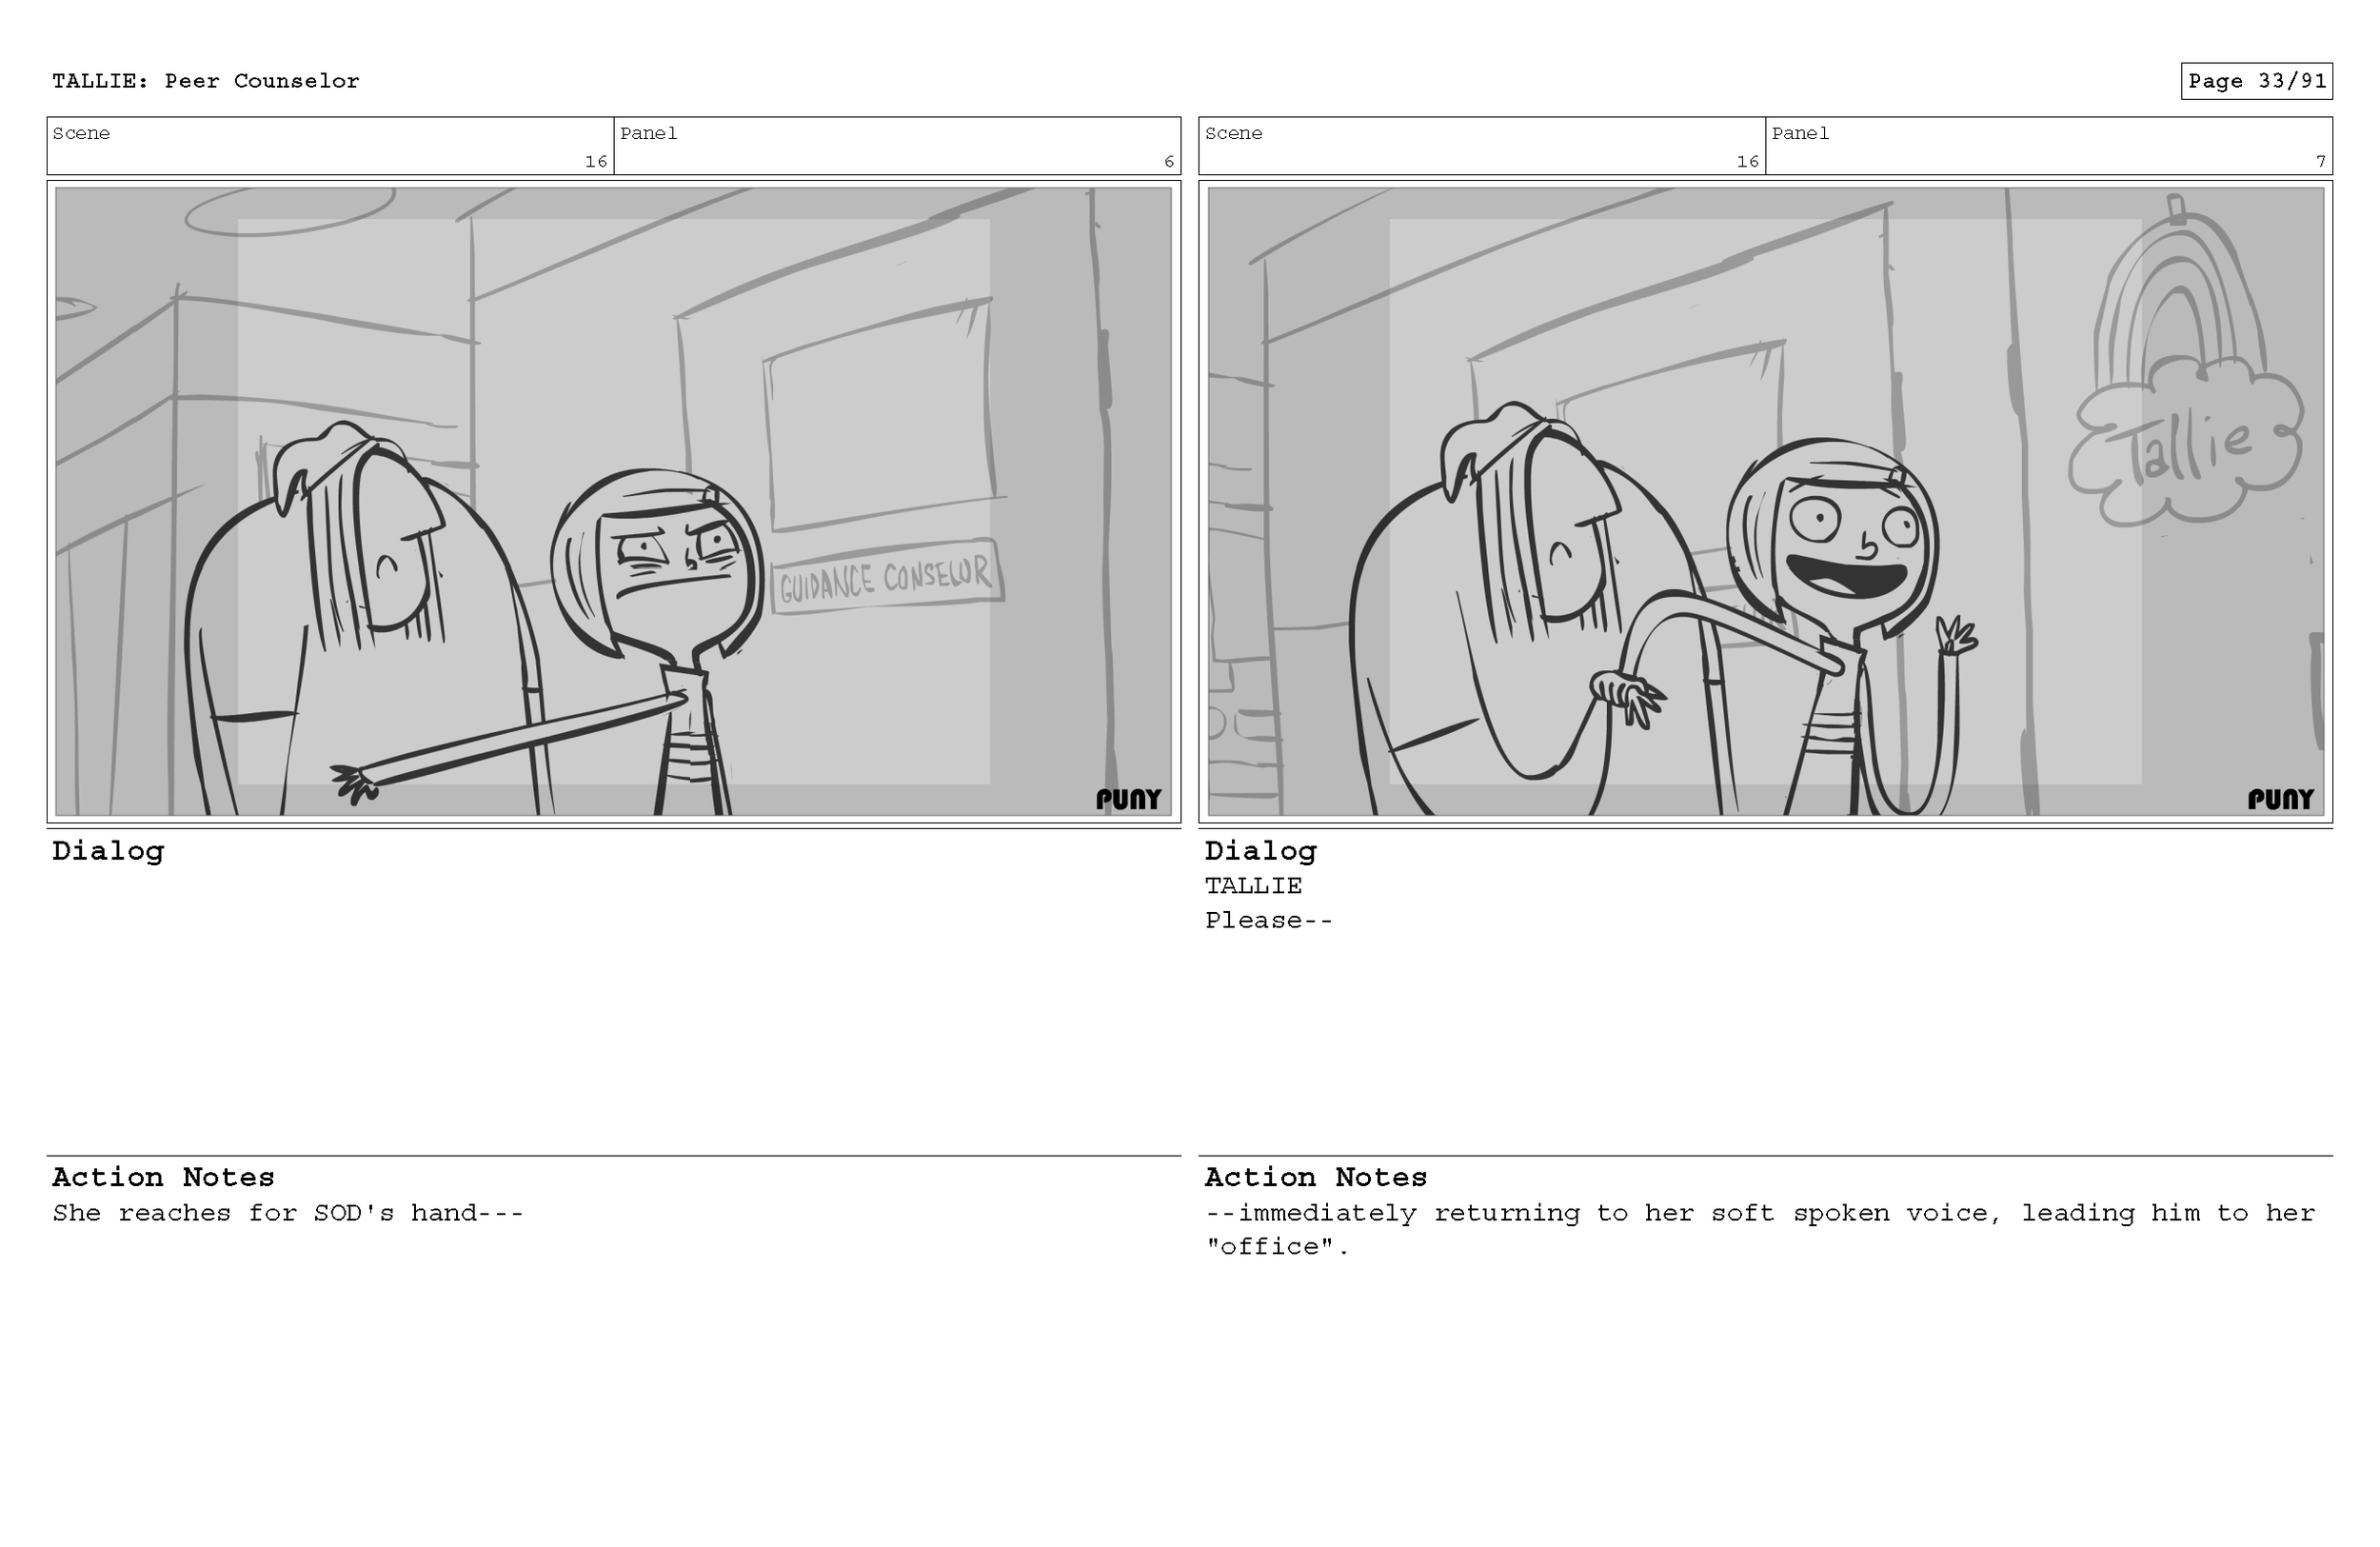 MikeOwens_STORYBOARDS_TallieSilverman_Page_34.png